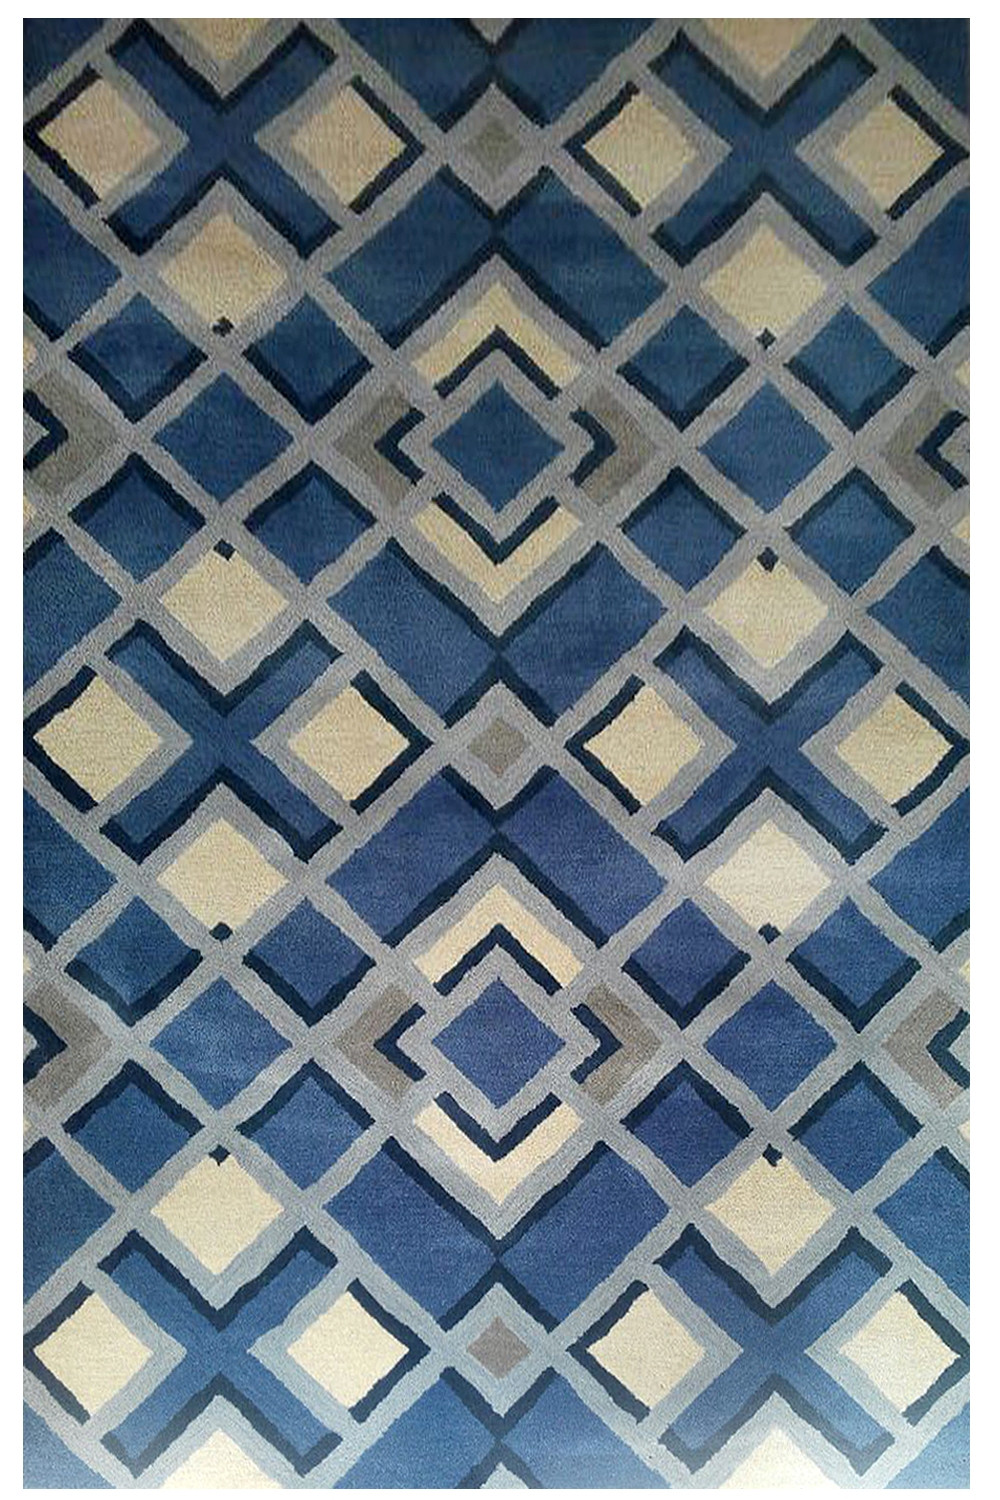 Beautiful Indigo Diamond Beautiful Handtufted Modern